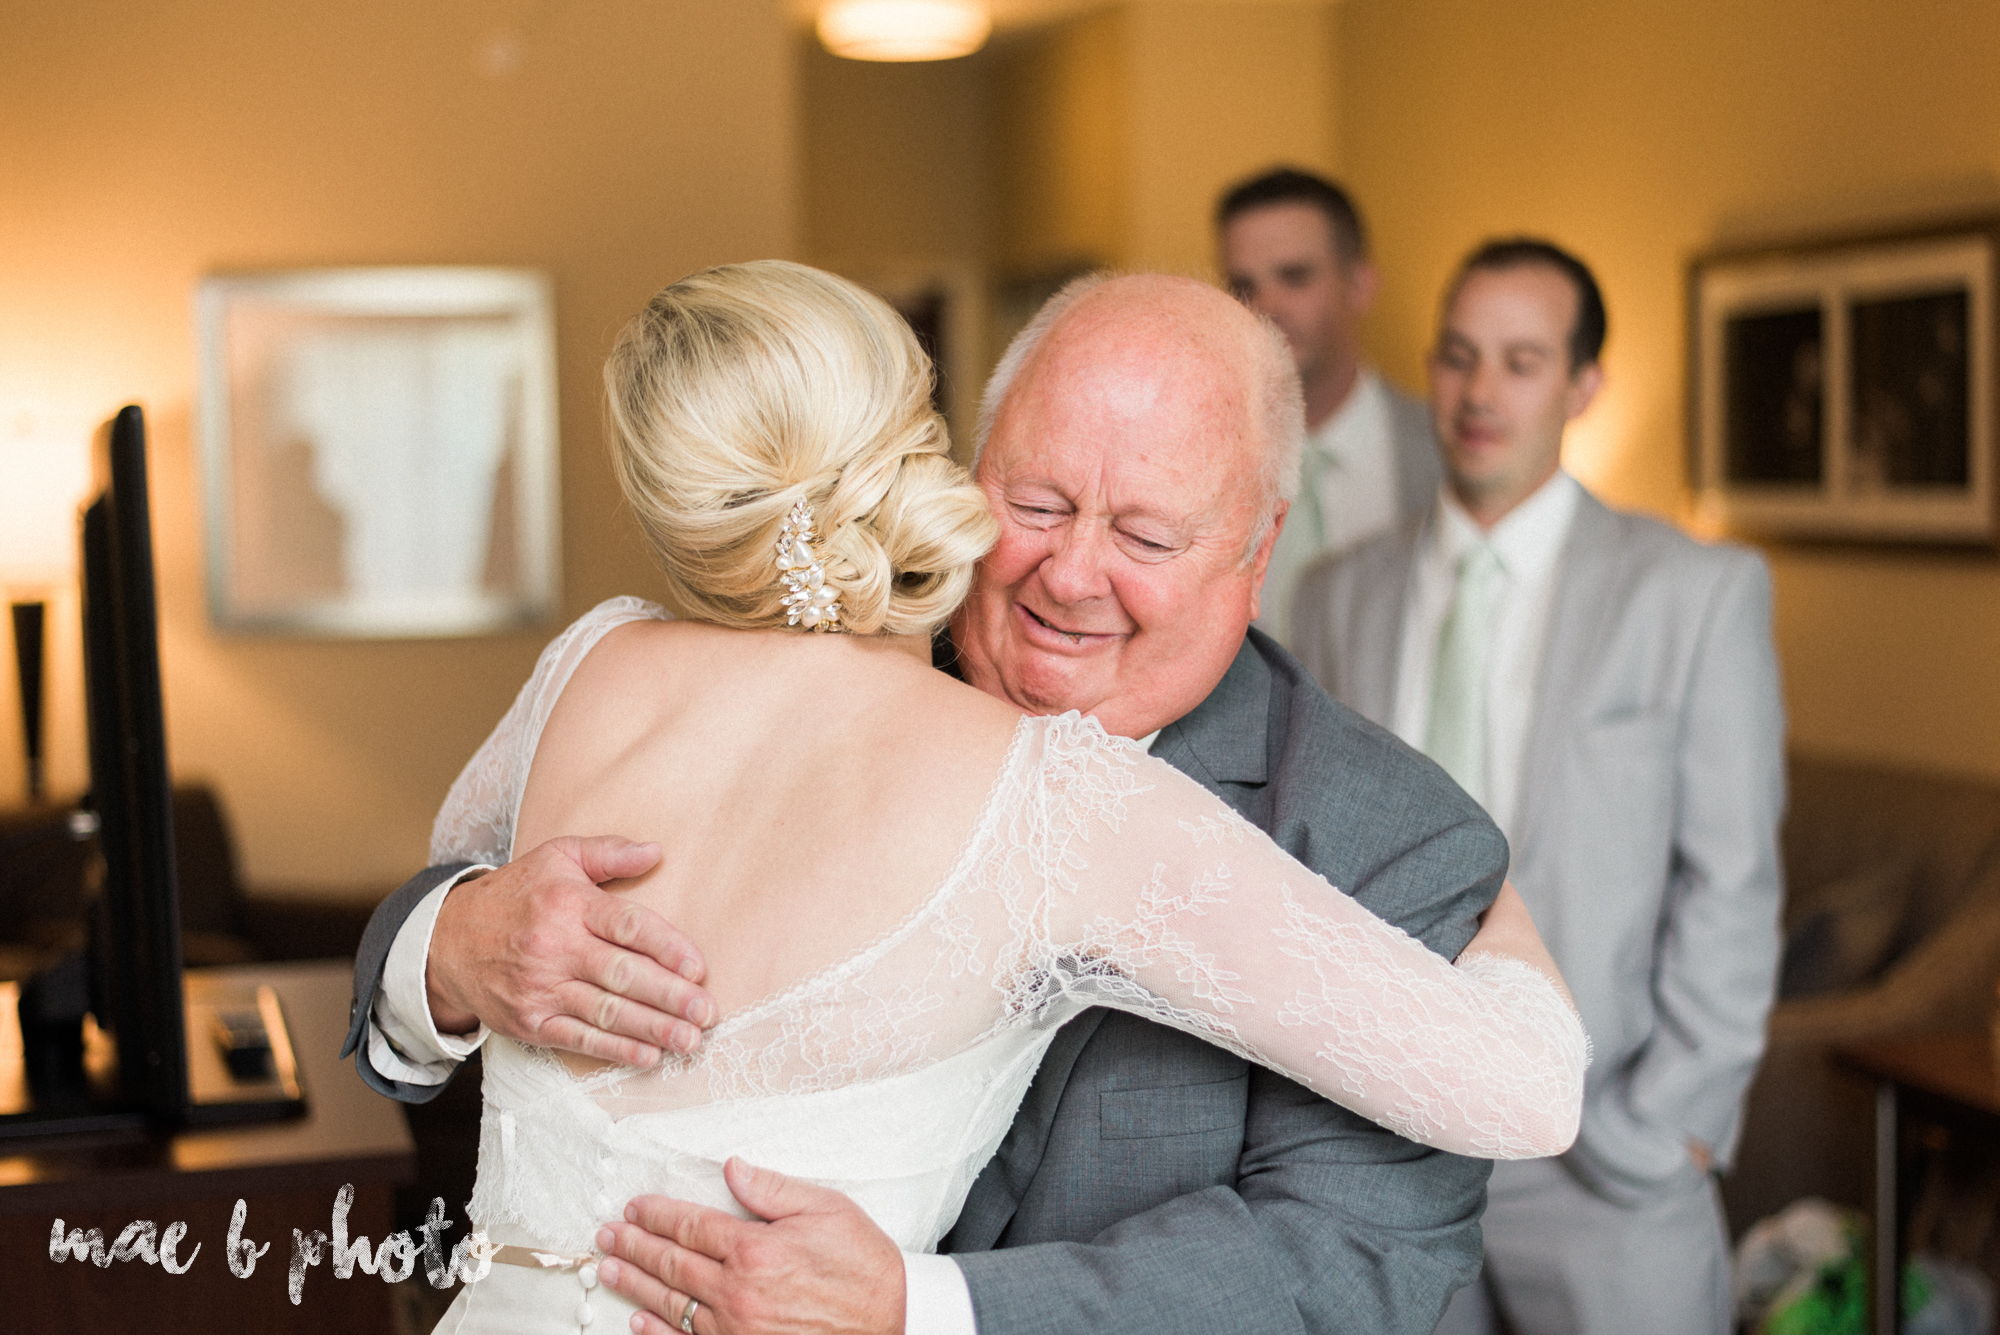 emily and michael's industrial chic summer country club wedding at the lake club in poland ohio photographed by cleveland wedding photographer mae b photo-44.jpg